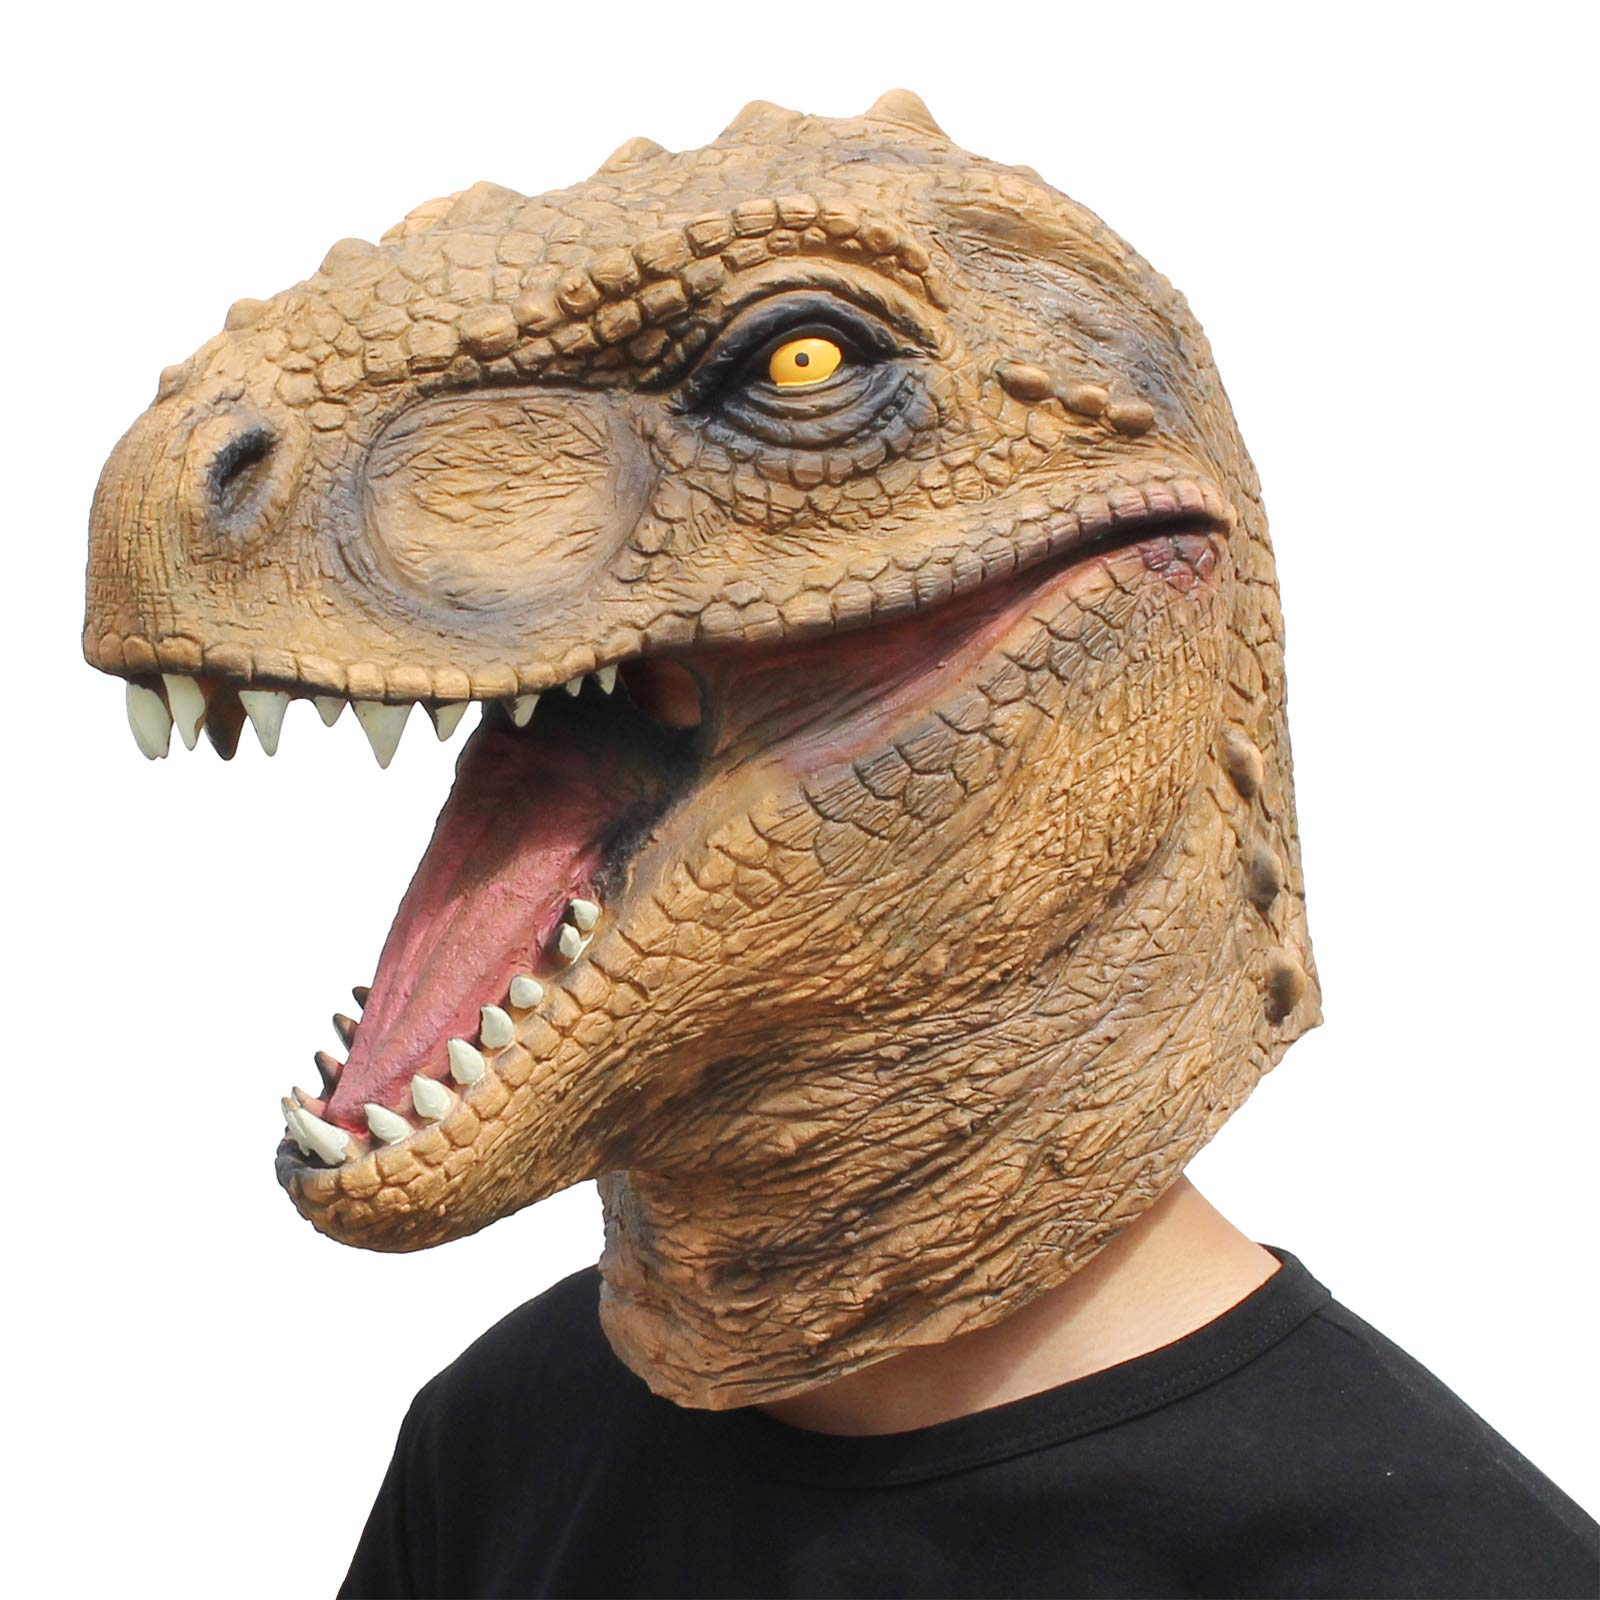 ویکالا · خرید  اصل اورجینال · خرید از آمازون · CreepyParty Novelty Halloween Costume Party Animal Jurassic Head Mask Dinosaur wekala · ویکالا